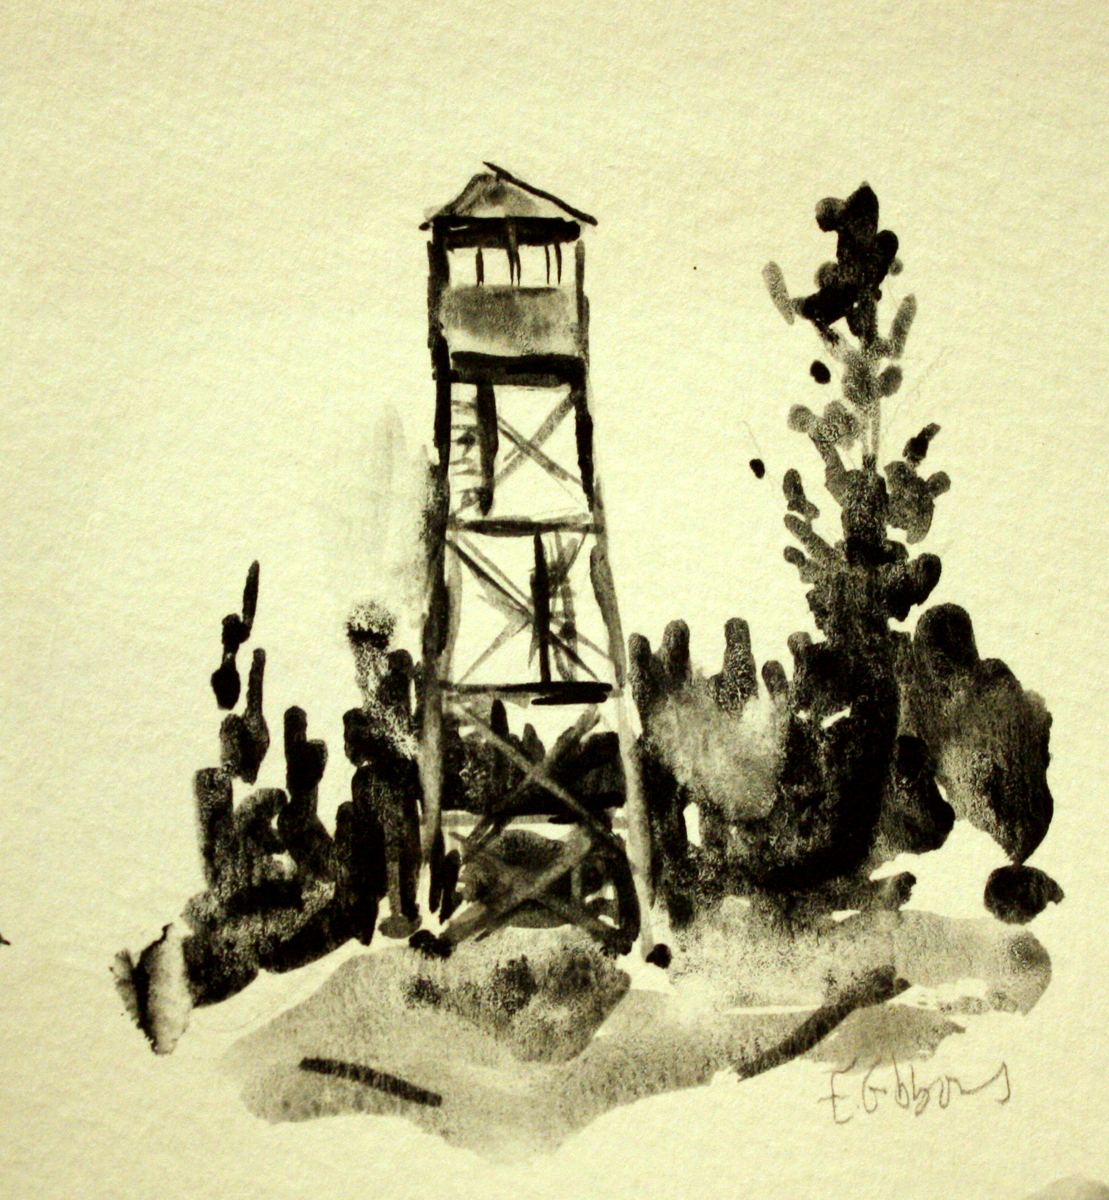 Bald Mountain Fire Tower (large view)